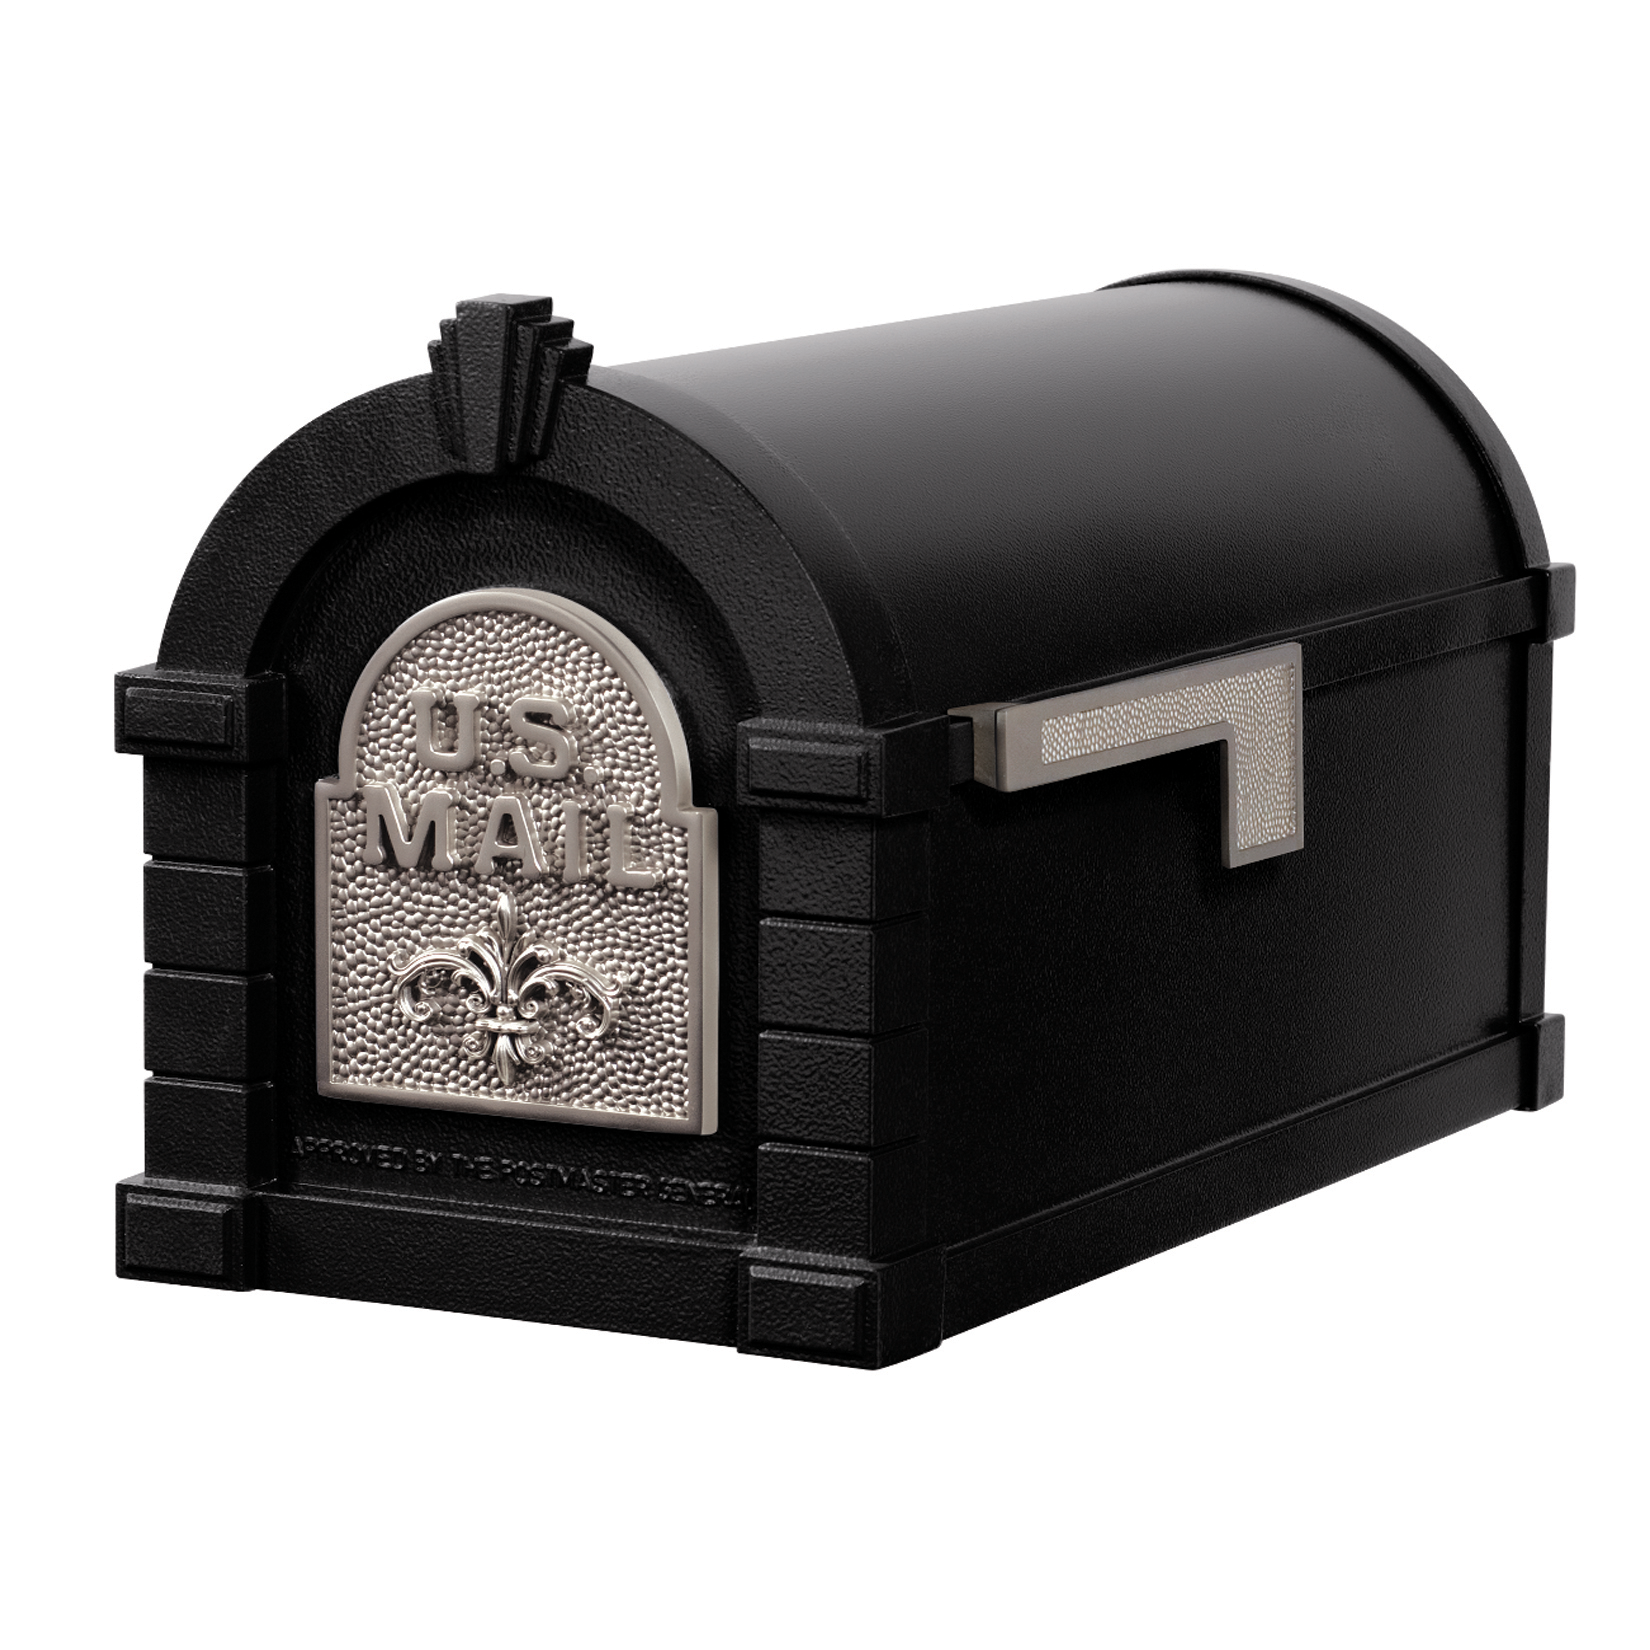 Gaines Fleur De Lis Keystone Mailboxes, Black with Satin Nickel